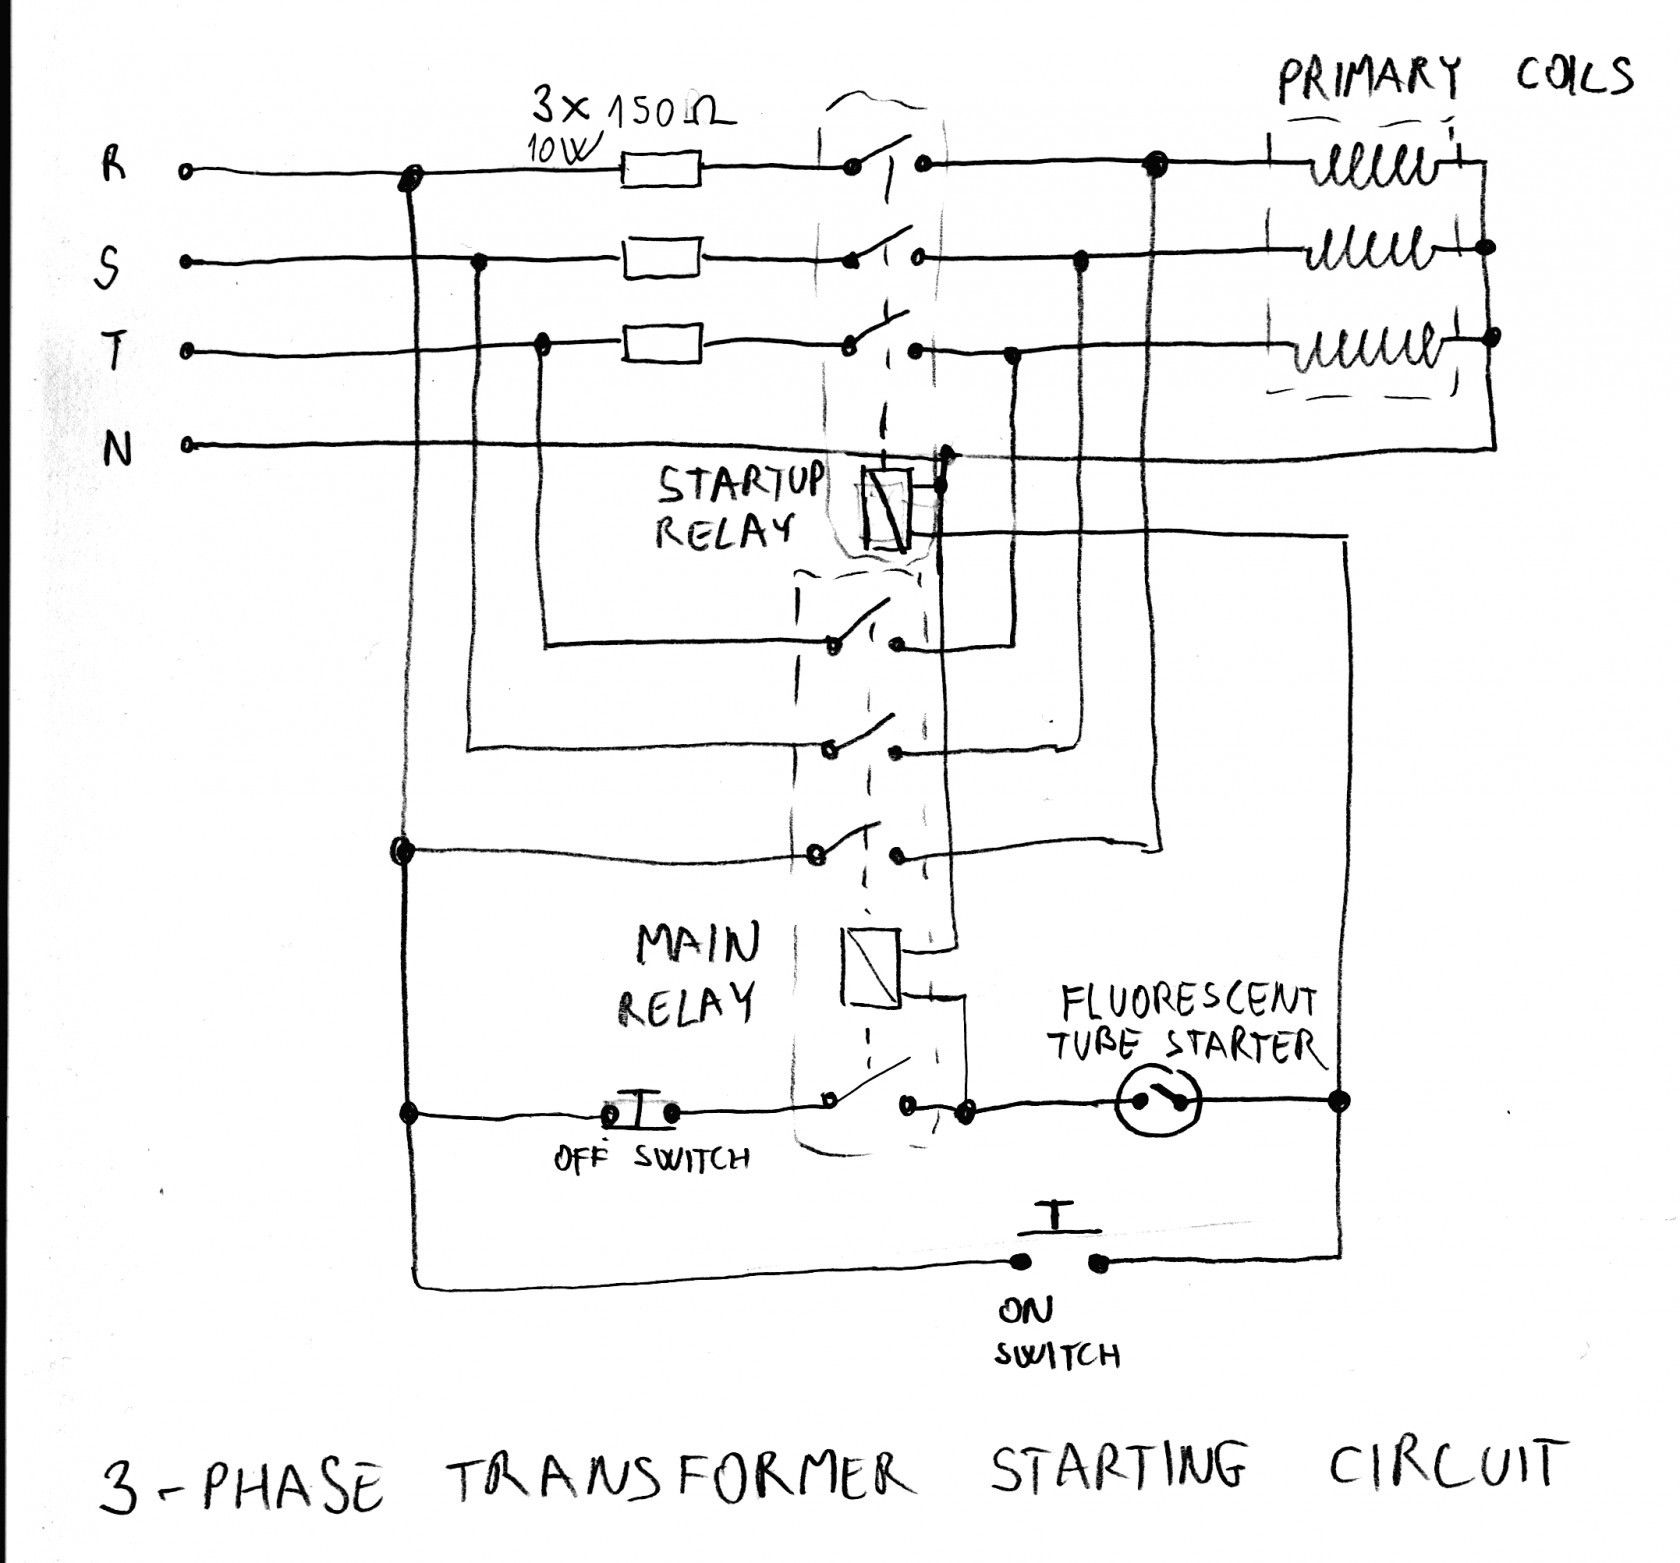 16 Automatic Common Wiring Diagrams Design Https Bacamajalah Com 16 Automatic Common Wi Transformer Wiring Single Phase Transformer Low Voltage Transformer